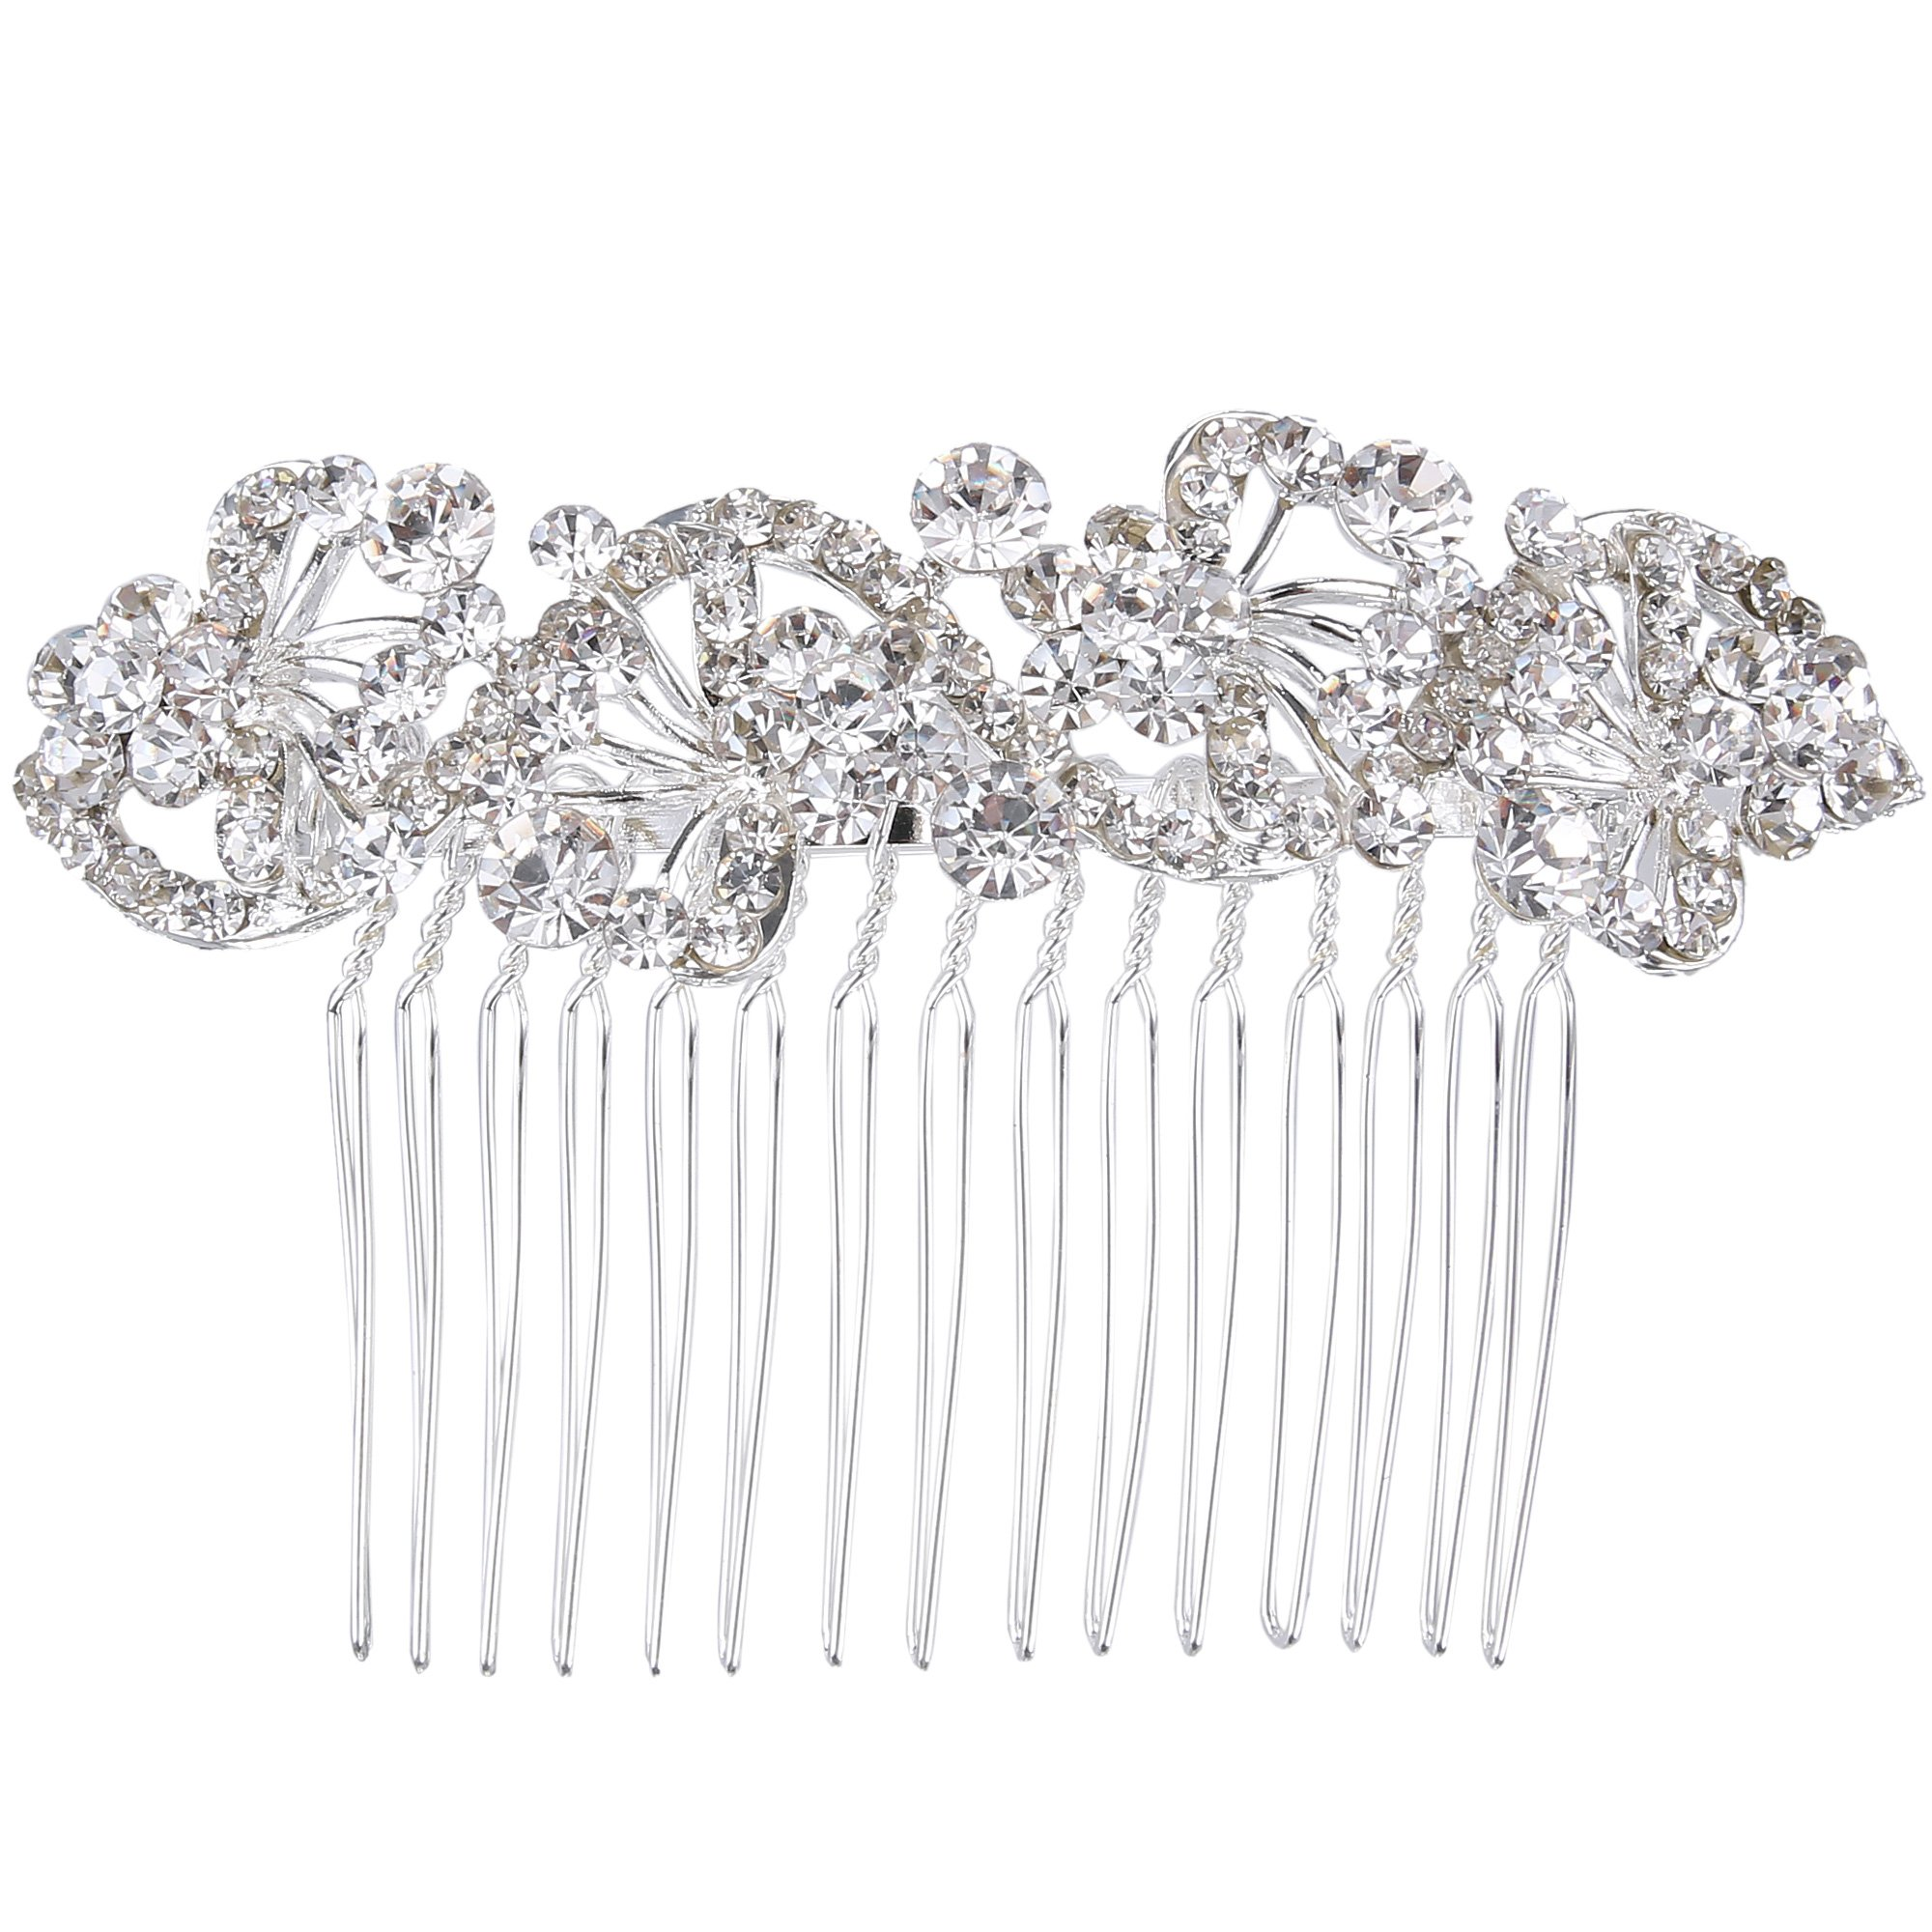 BriLove Wedding Hair Accessories Bridal Hair Comb Bohemian Crystal Charming Wave Shape Flower Bride Side Comb for Women Silver-Tone Clear by BriLove